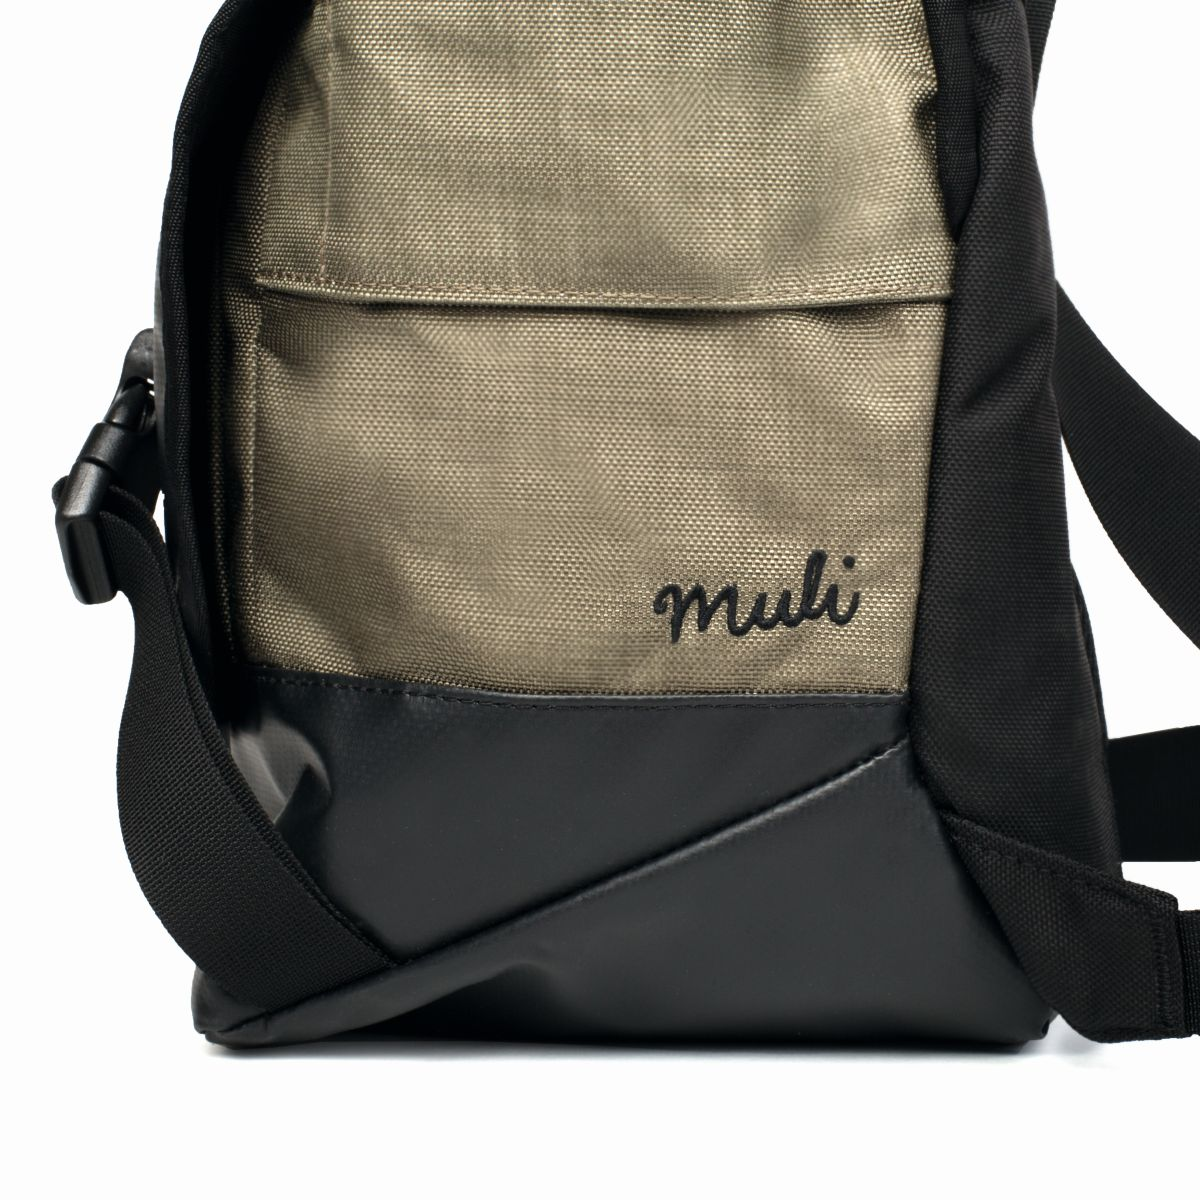 CRUMPLER-MULI-PHOTO-9000 - Fotocredit: Crumpler